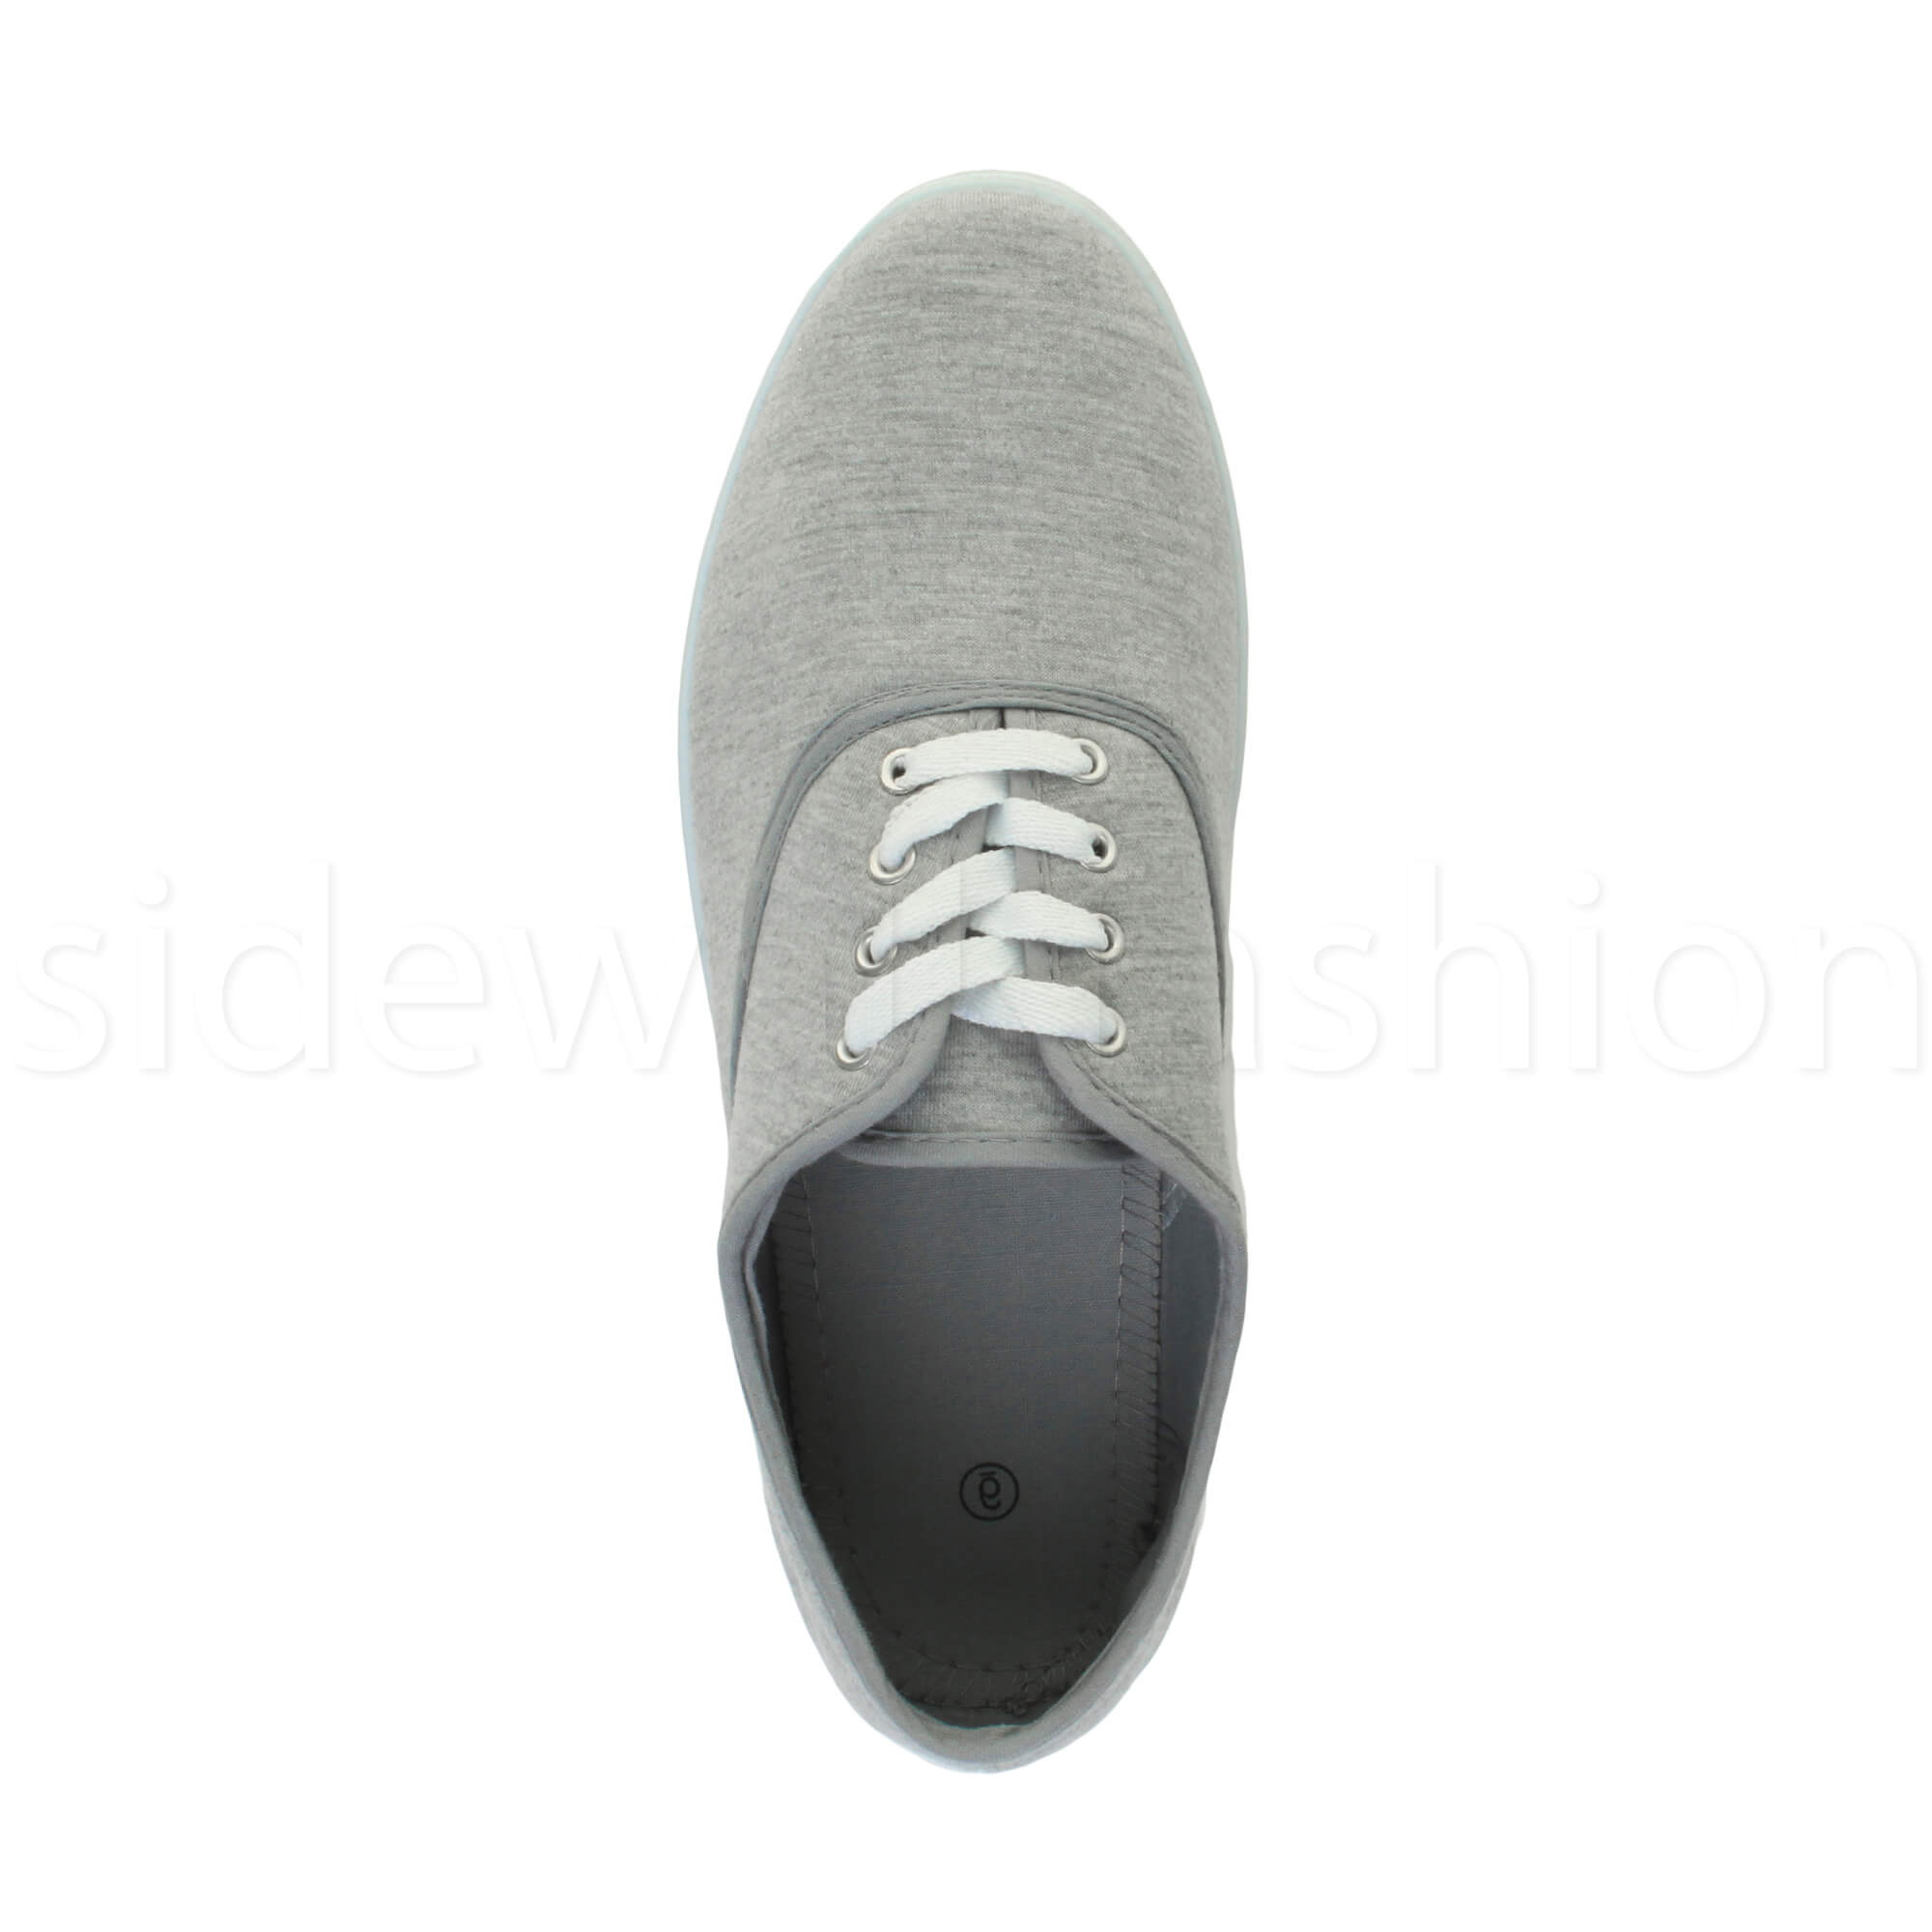 Mens-canvas-trainers-plimsoles-plimsolls-shoes-lace-up-pumps-size thumbnail 20